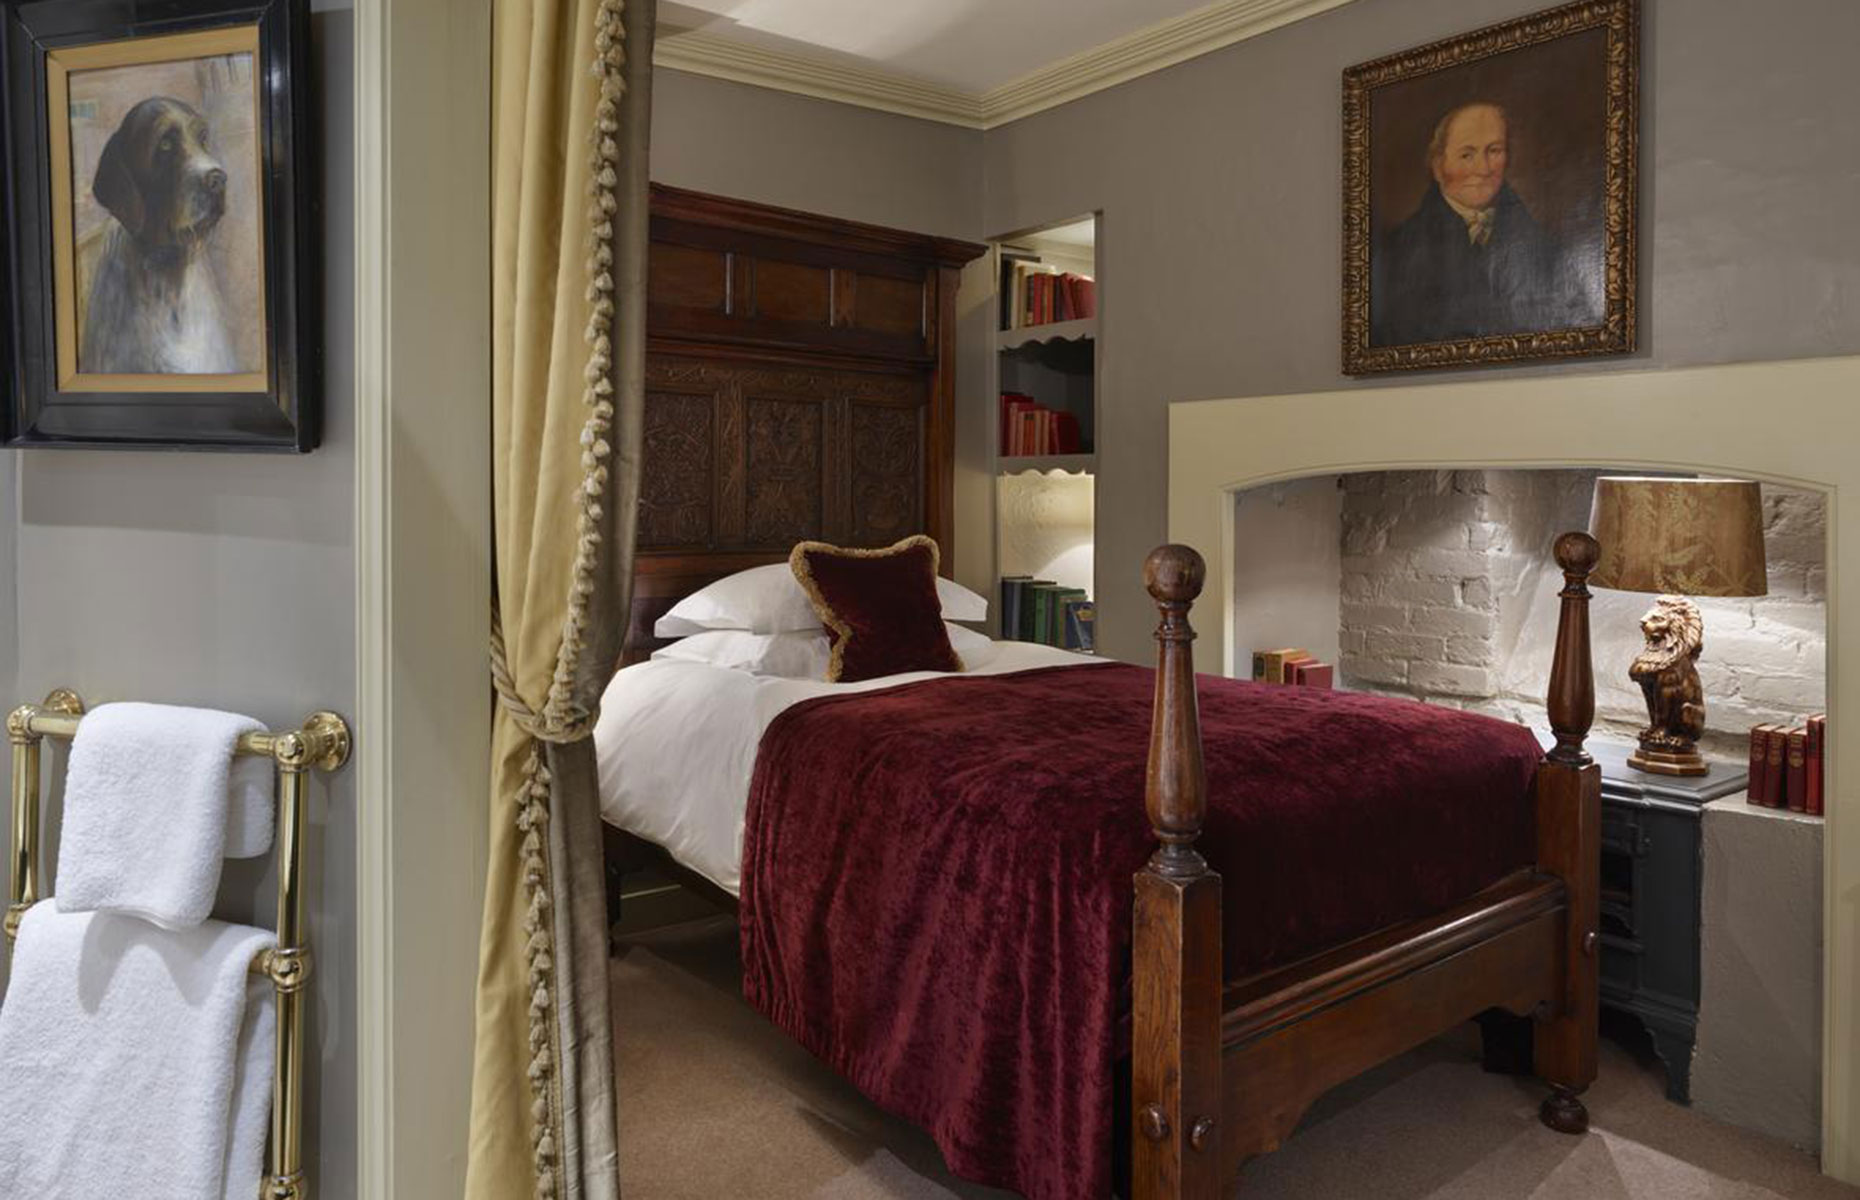 Hazlitt's hotel is a must if you're looking for a historic hotel in London